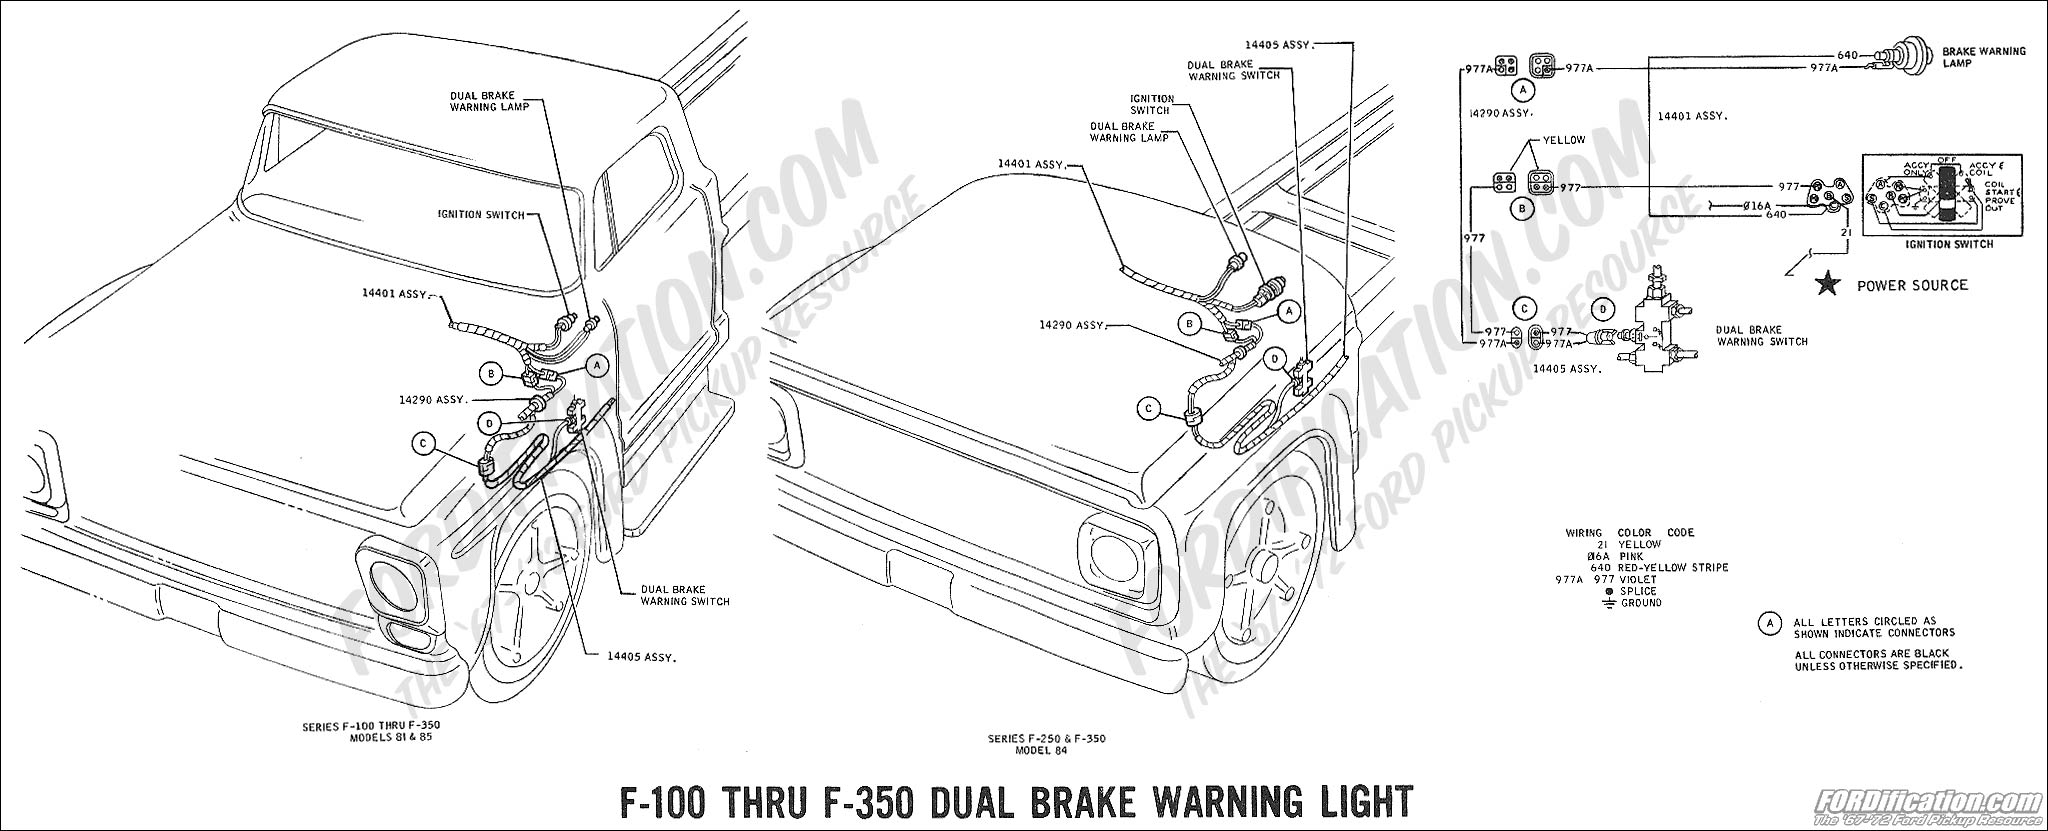 wiring_69brakewarninglight ford truck technical drawings and schematics section h wiring 2008 F250 Fuse Box Diagram at honlapkeszites.co